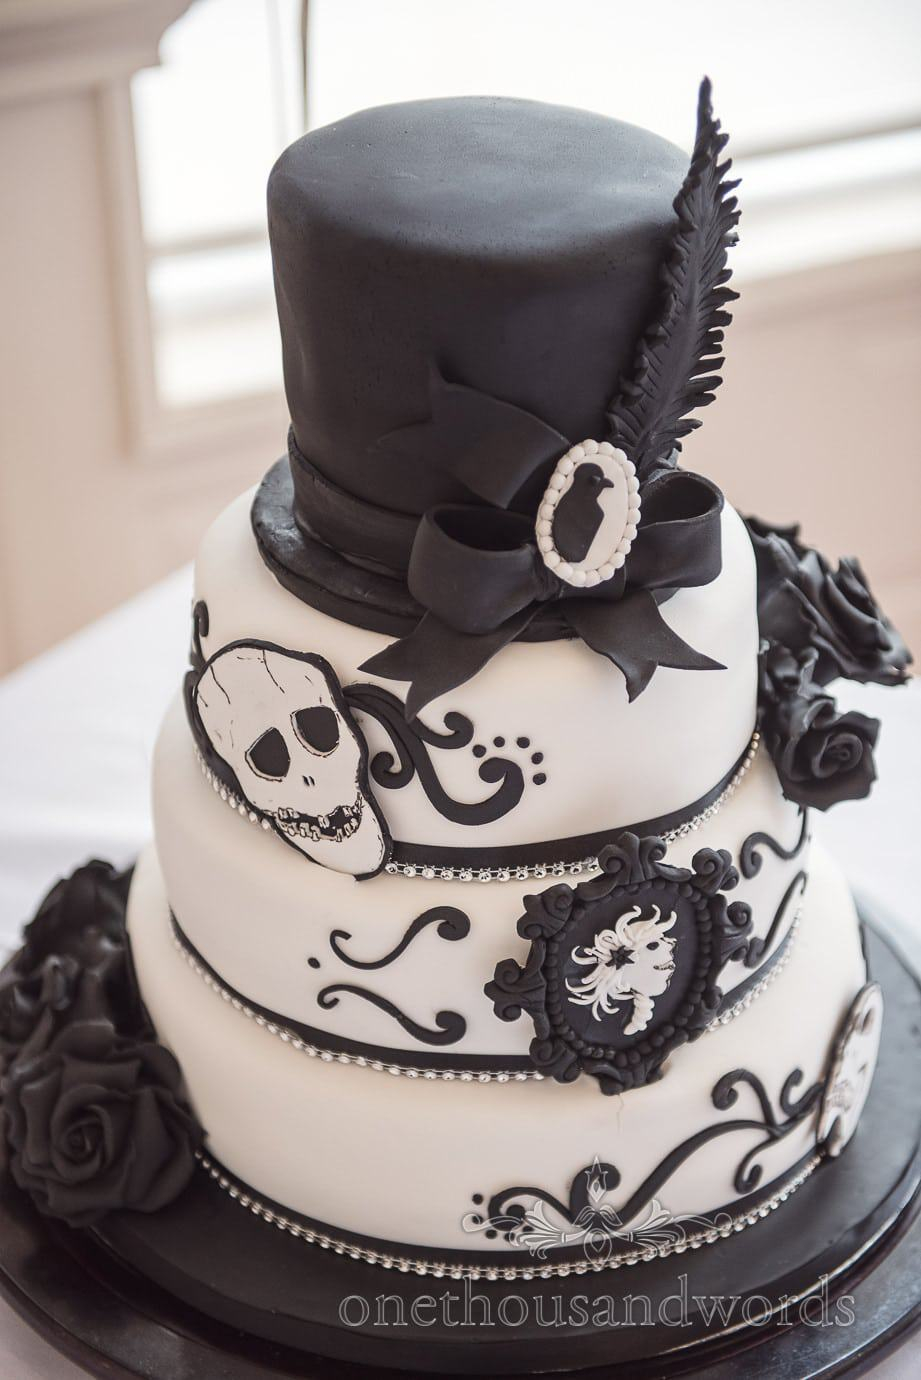 rock and roll themed Black and white wedding cake with black roses, skull and top hat